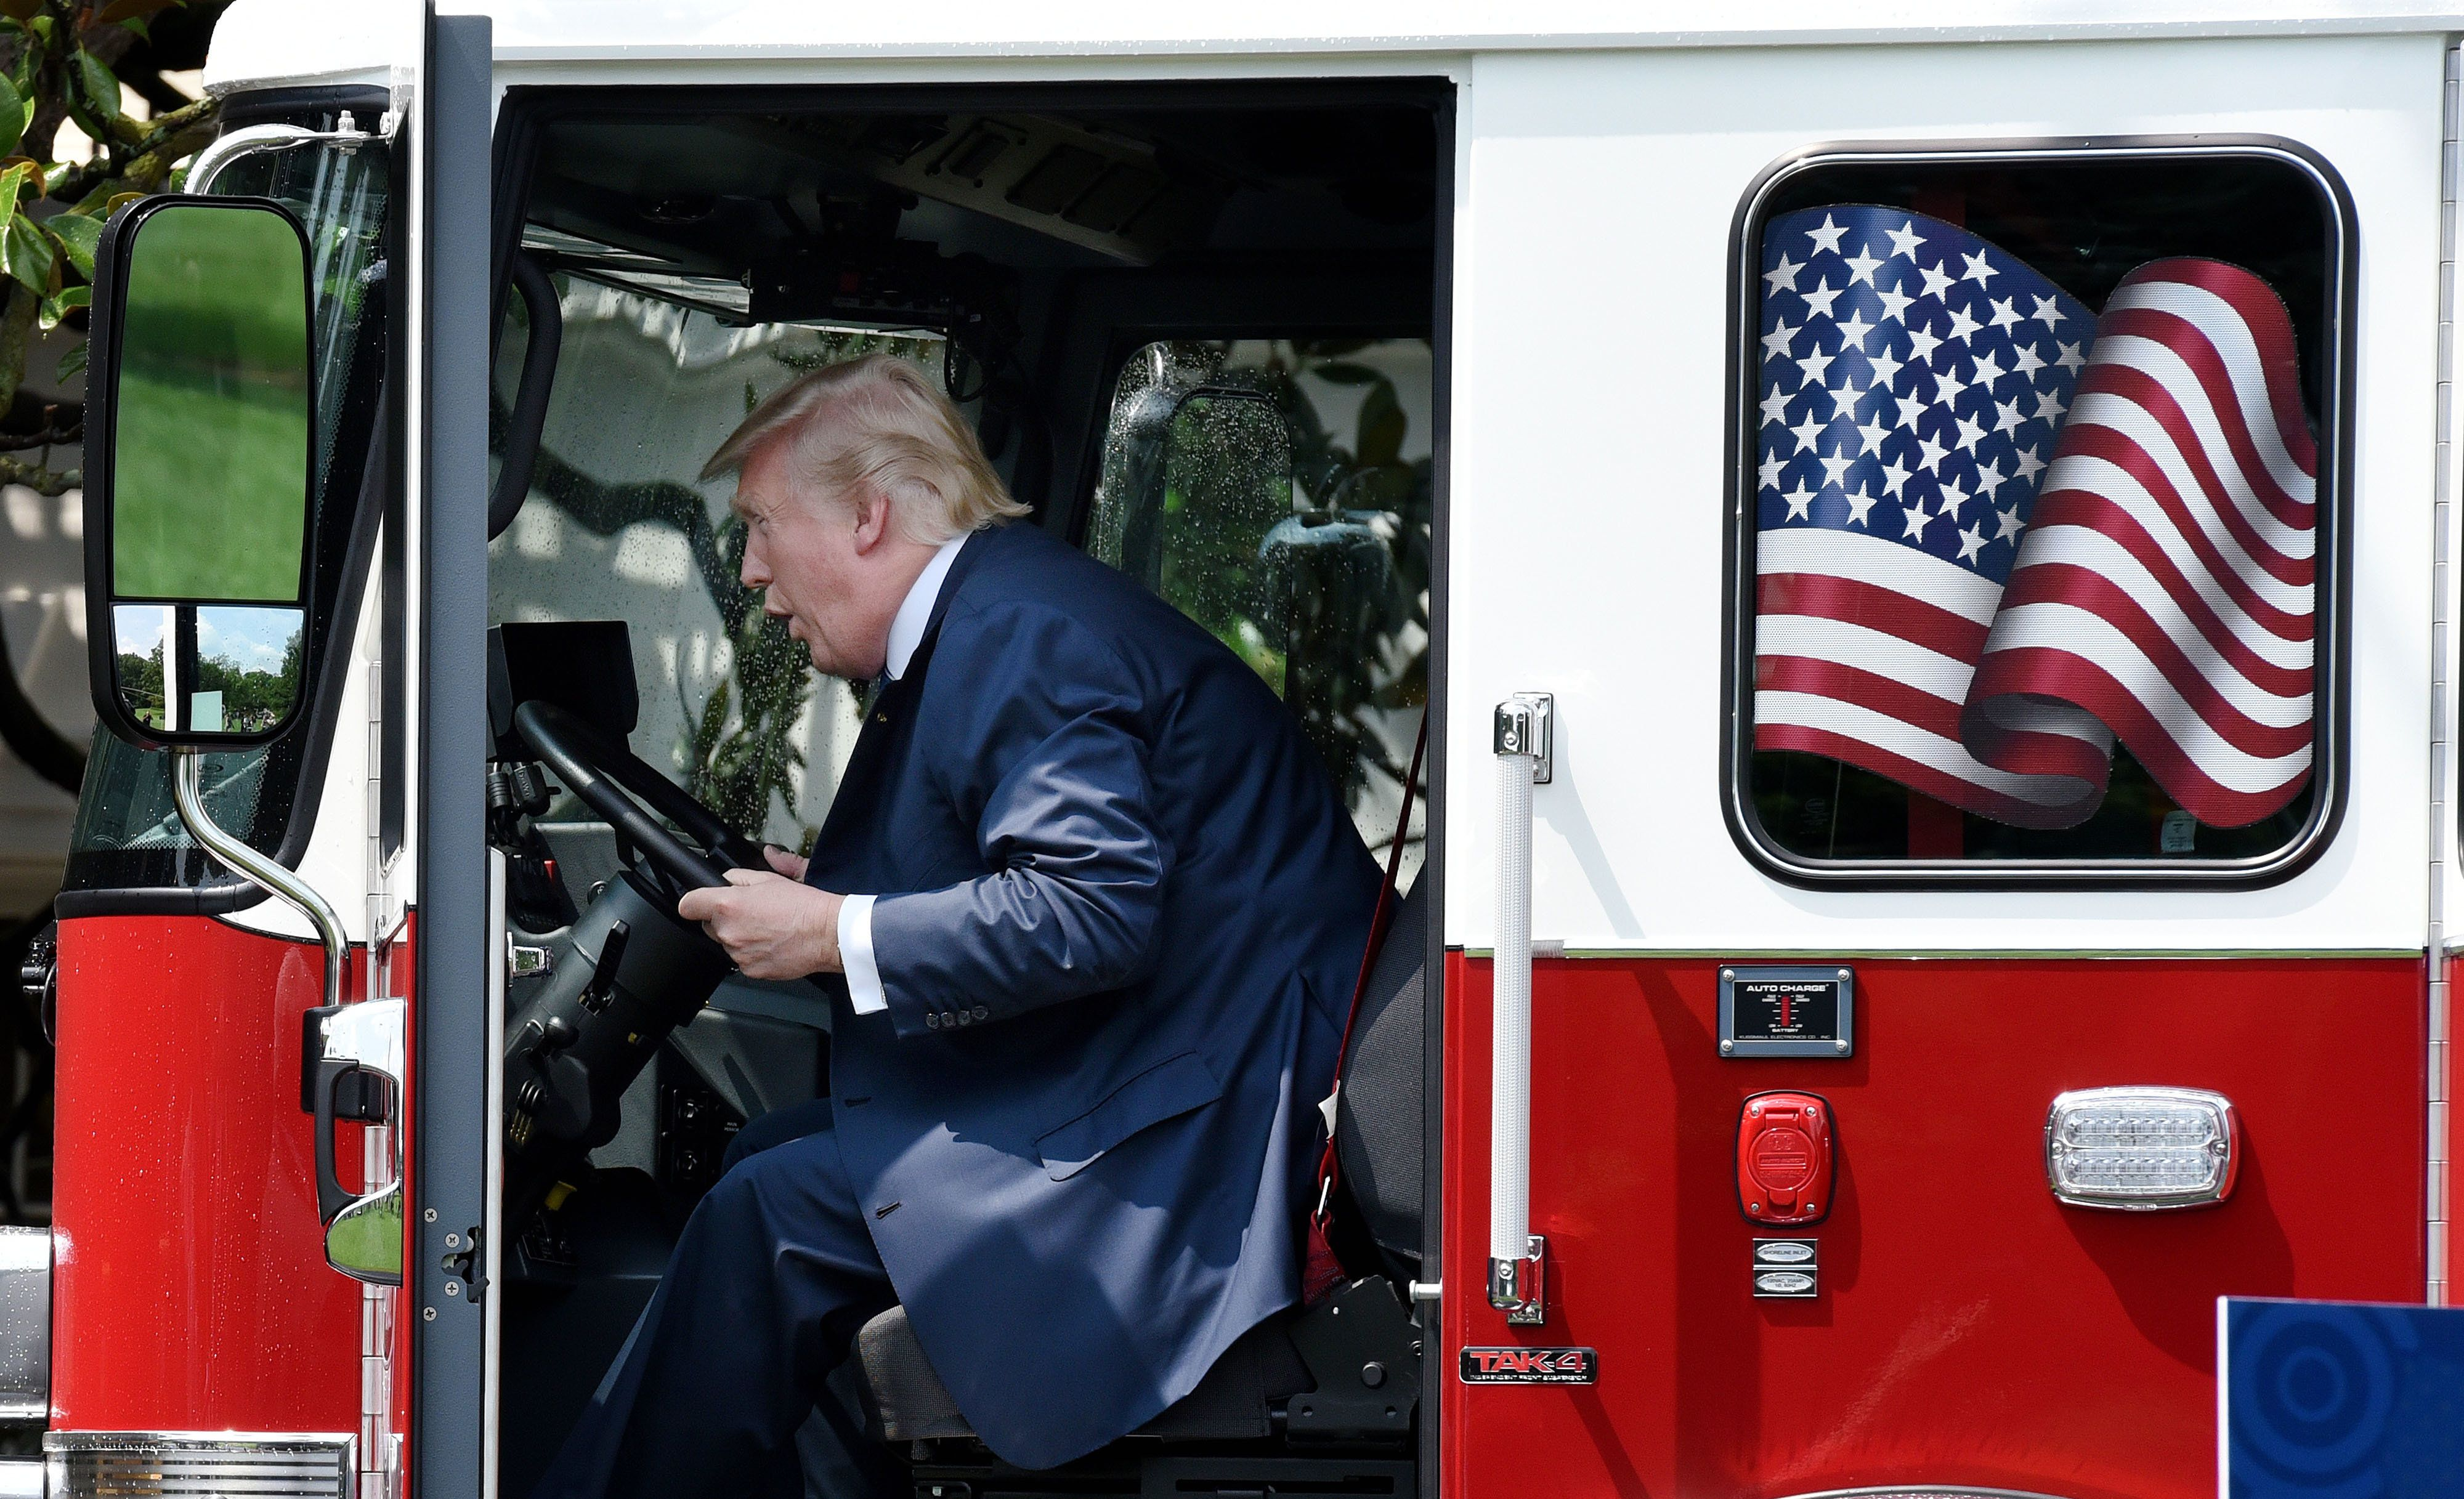 President Donald Trump examines a fire truck from Wisconsin-based manufacturer Pierce on the South Lawn during a 'Made in America' product showcase event at the White House in Washington, DC, on July 17, 2017.  / AFP PHOTO / Olivier Douliery        (Photo credit should read OLIVIER DOULIERY/AFP/Getty Images)